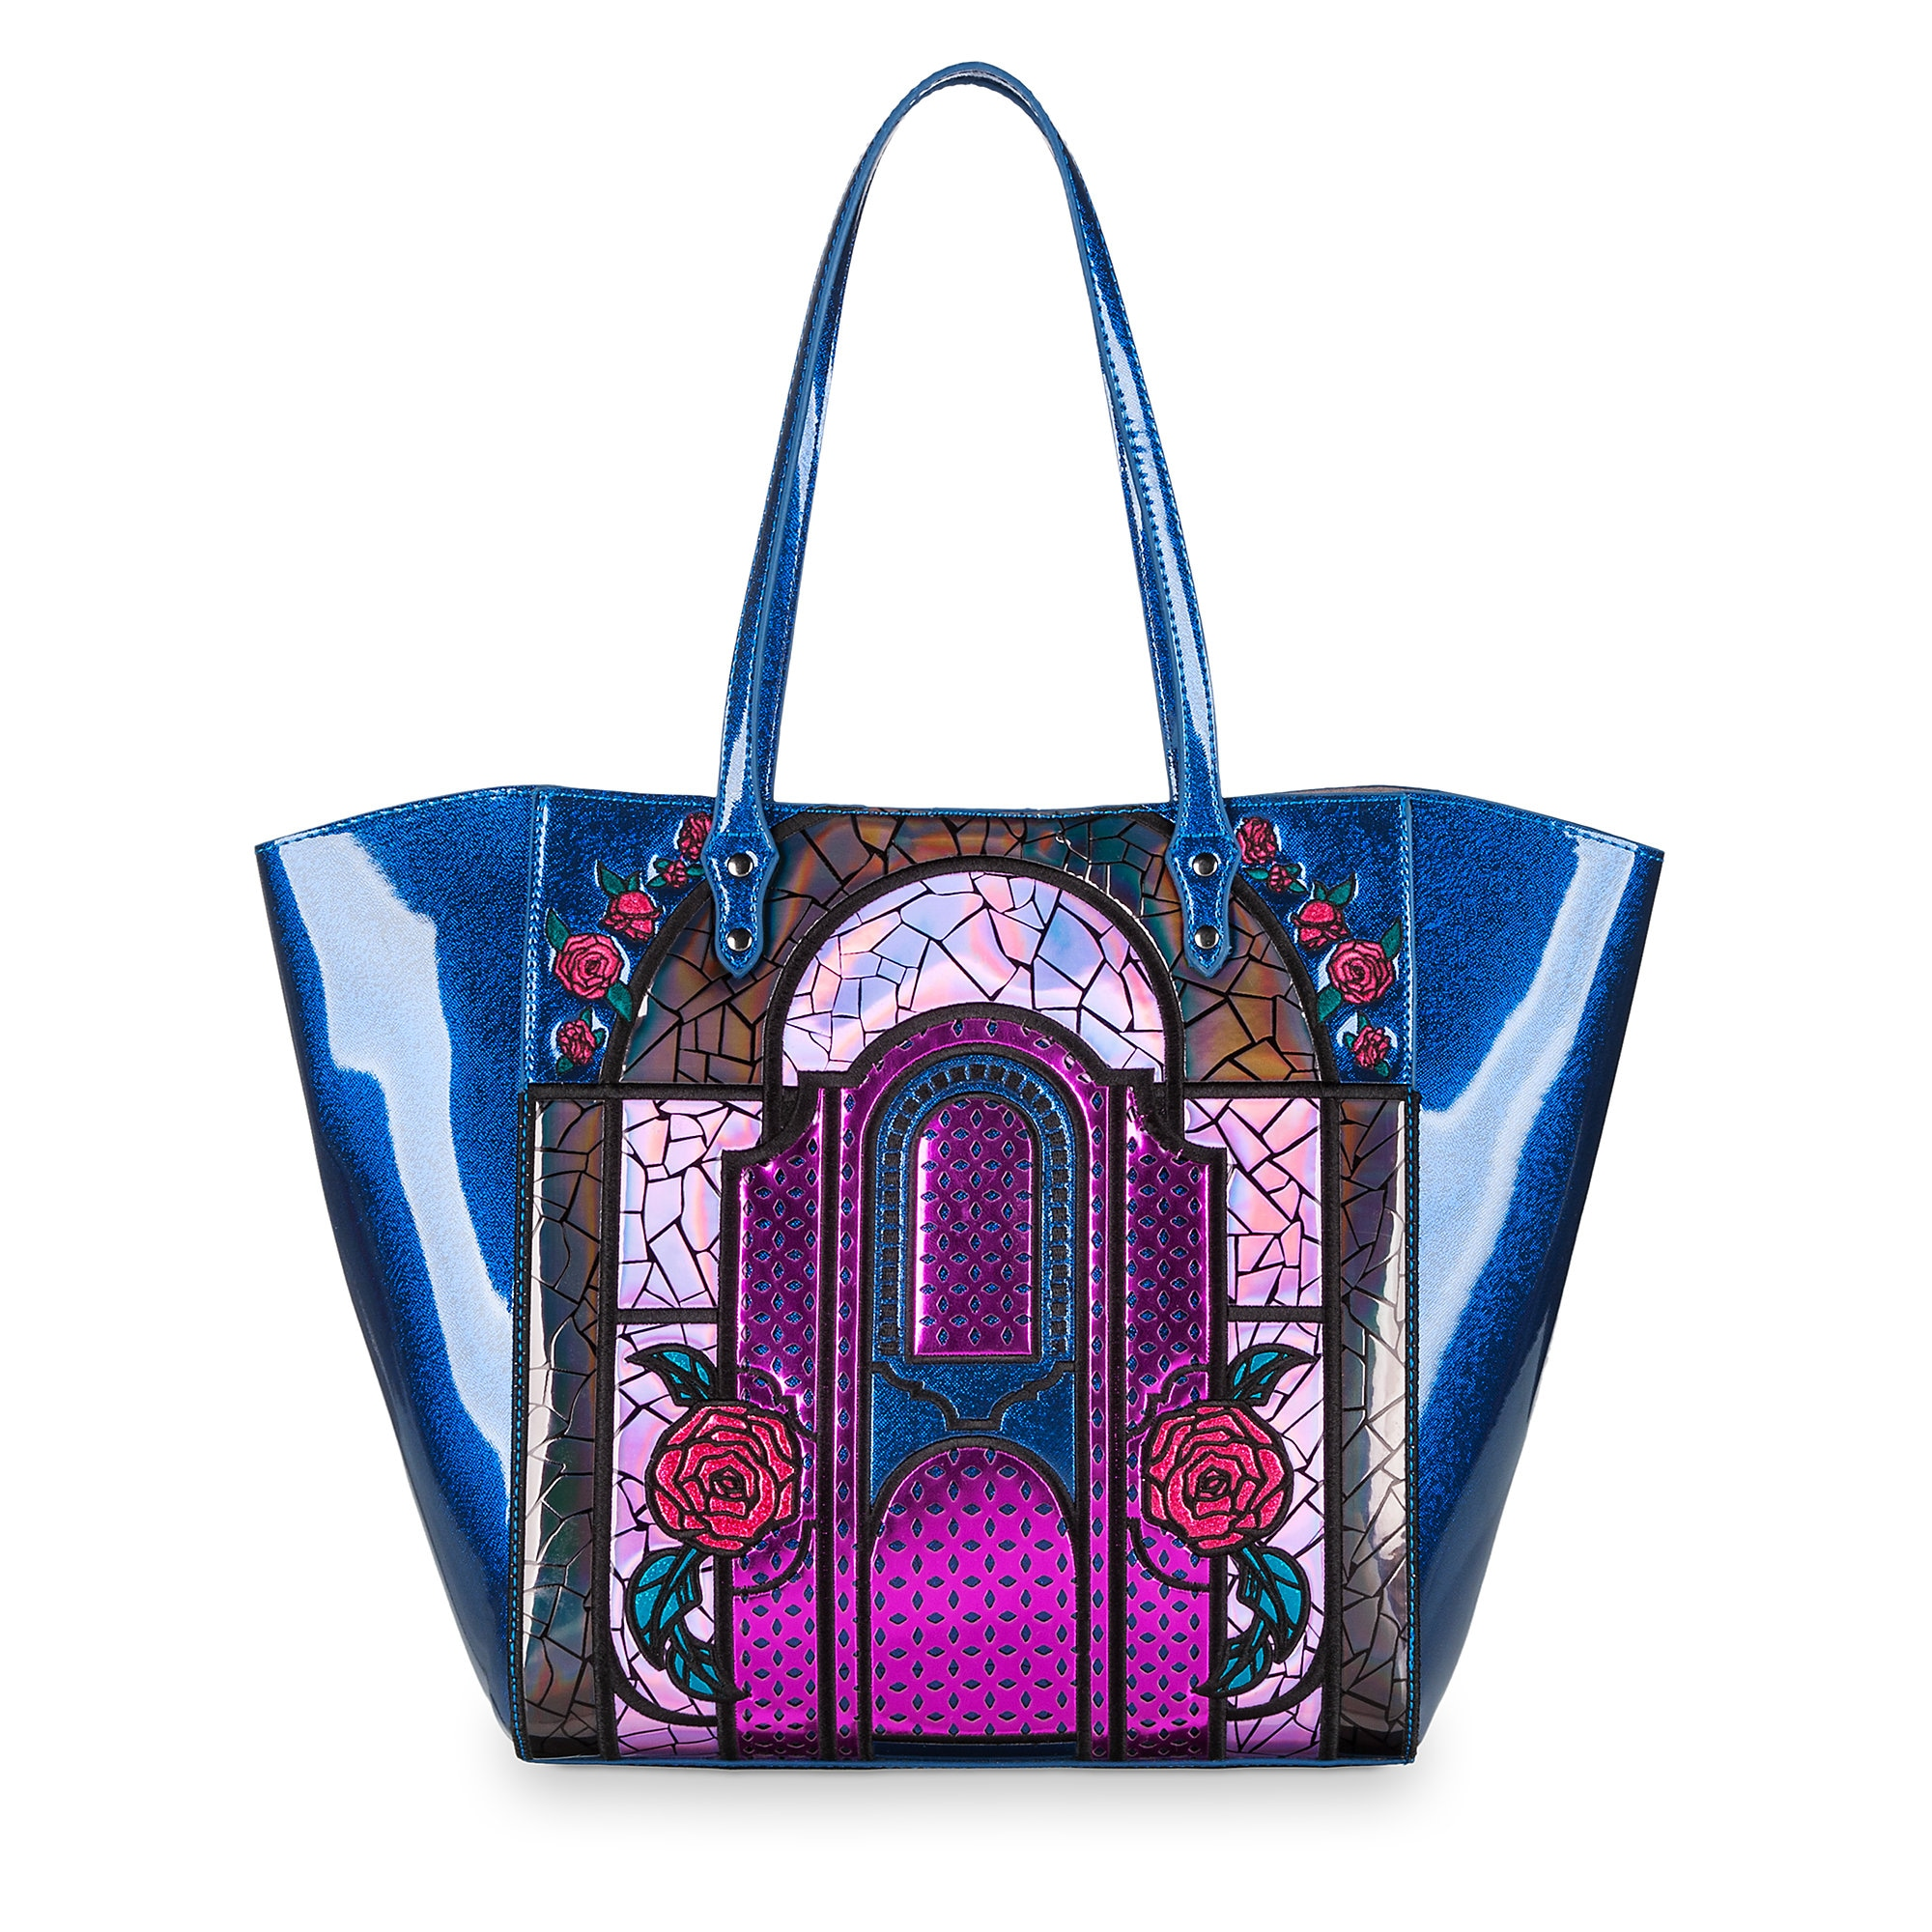 Beauty and the Beast Tote by Danielle Nicole